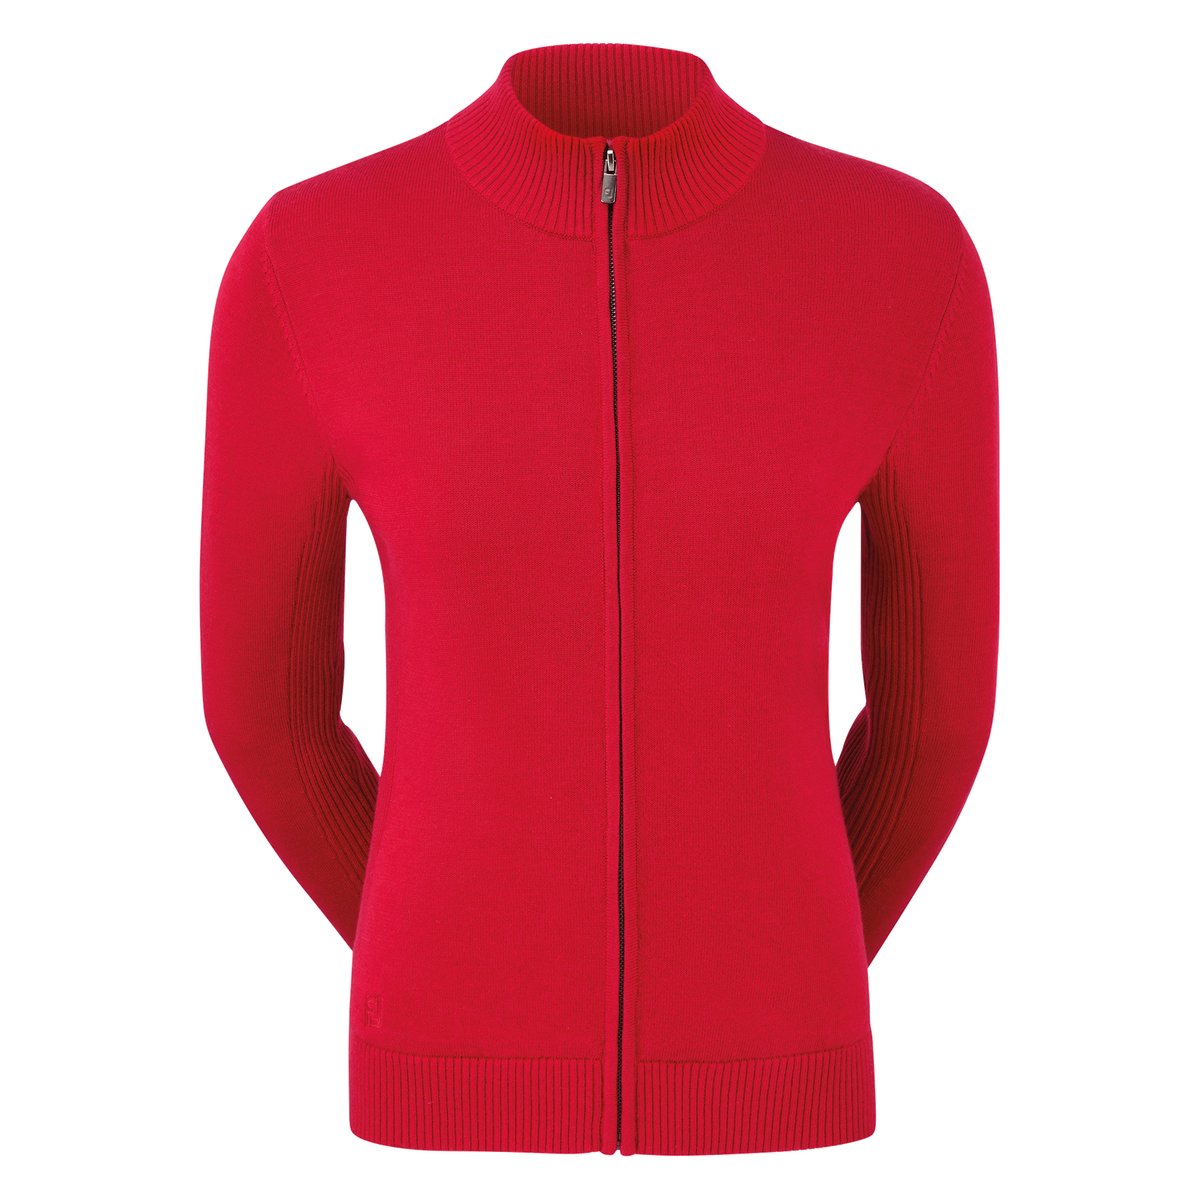 Women's Full-Zip Lined Wool Blend Pullover